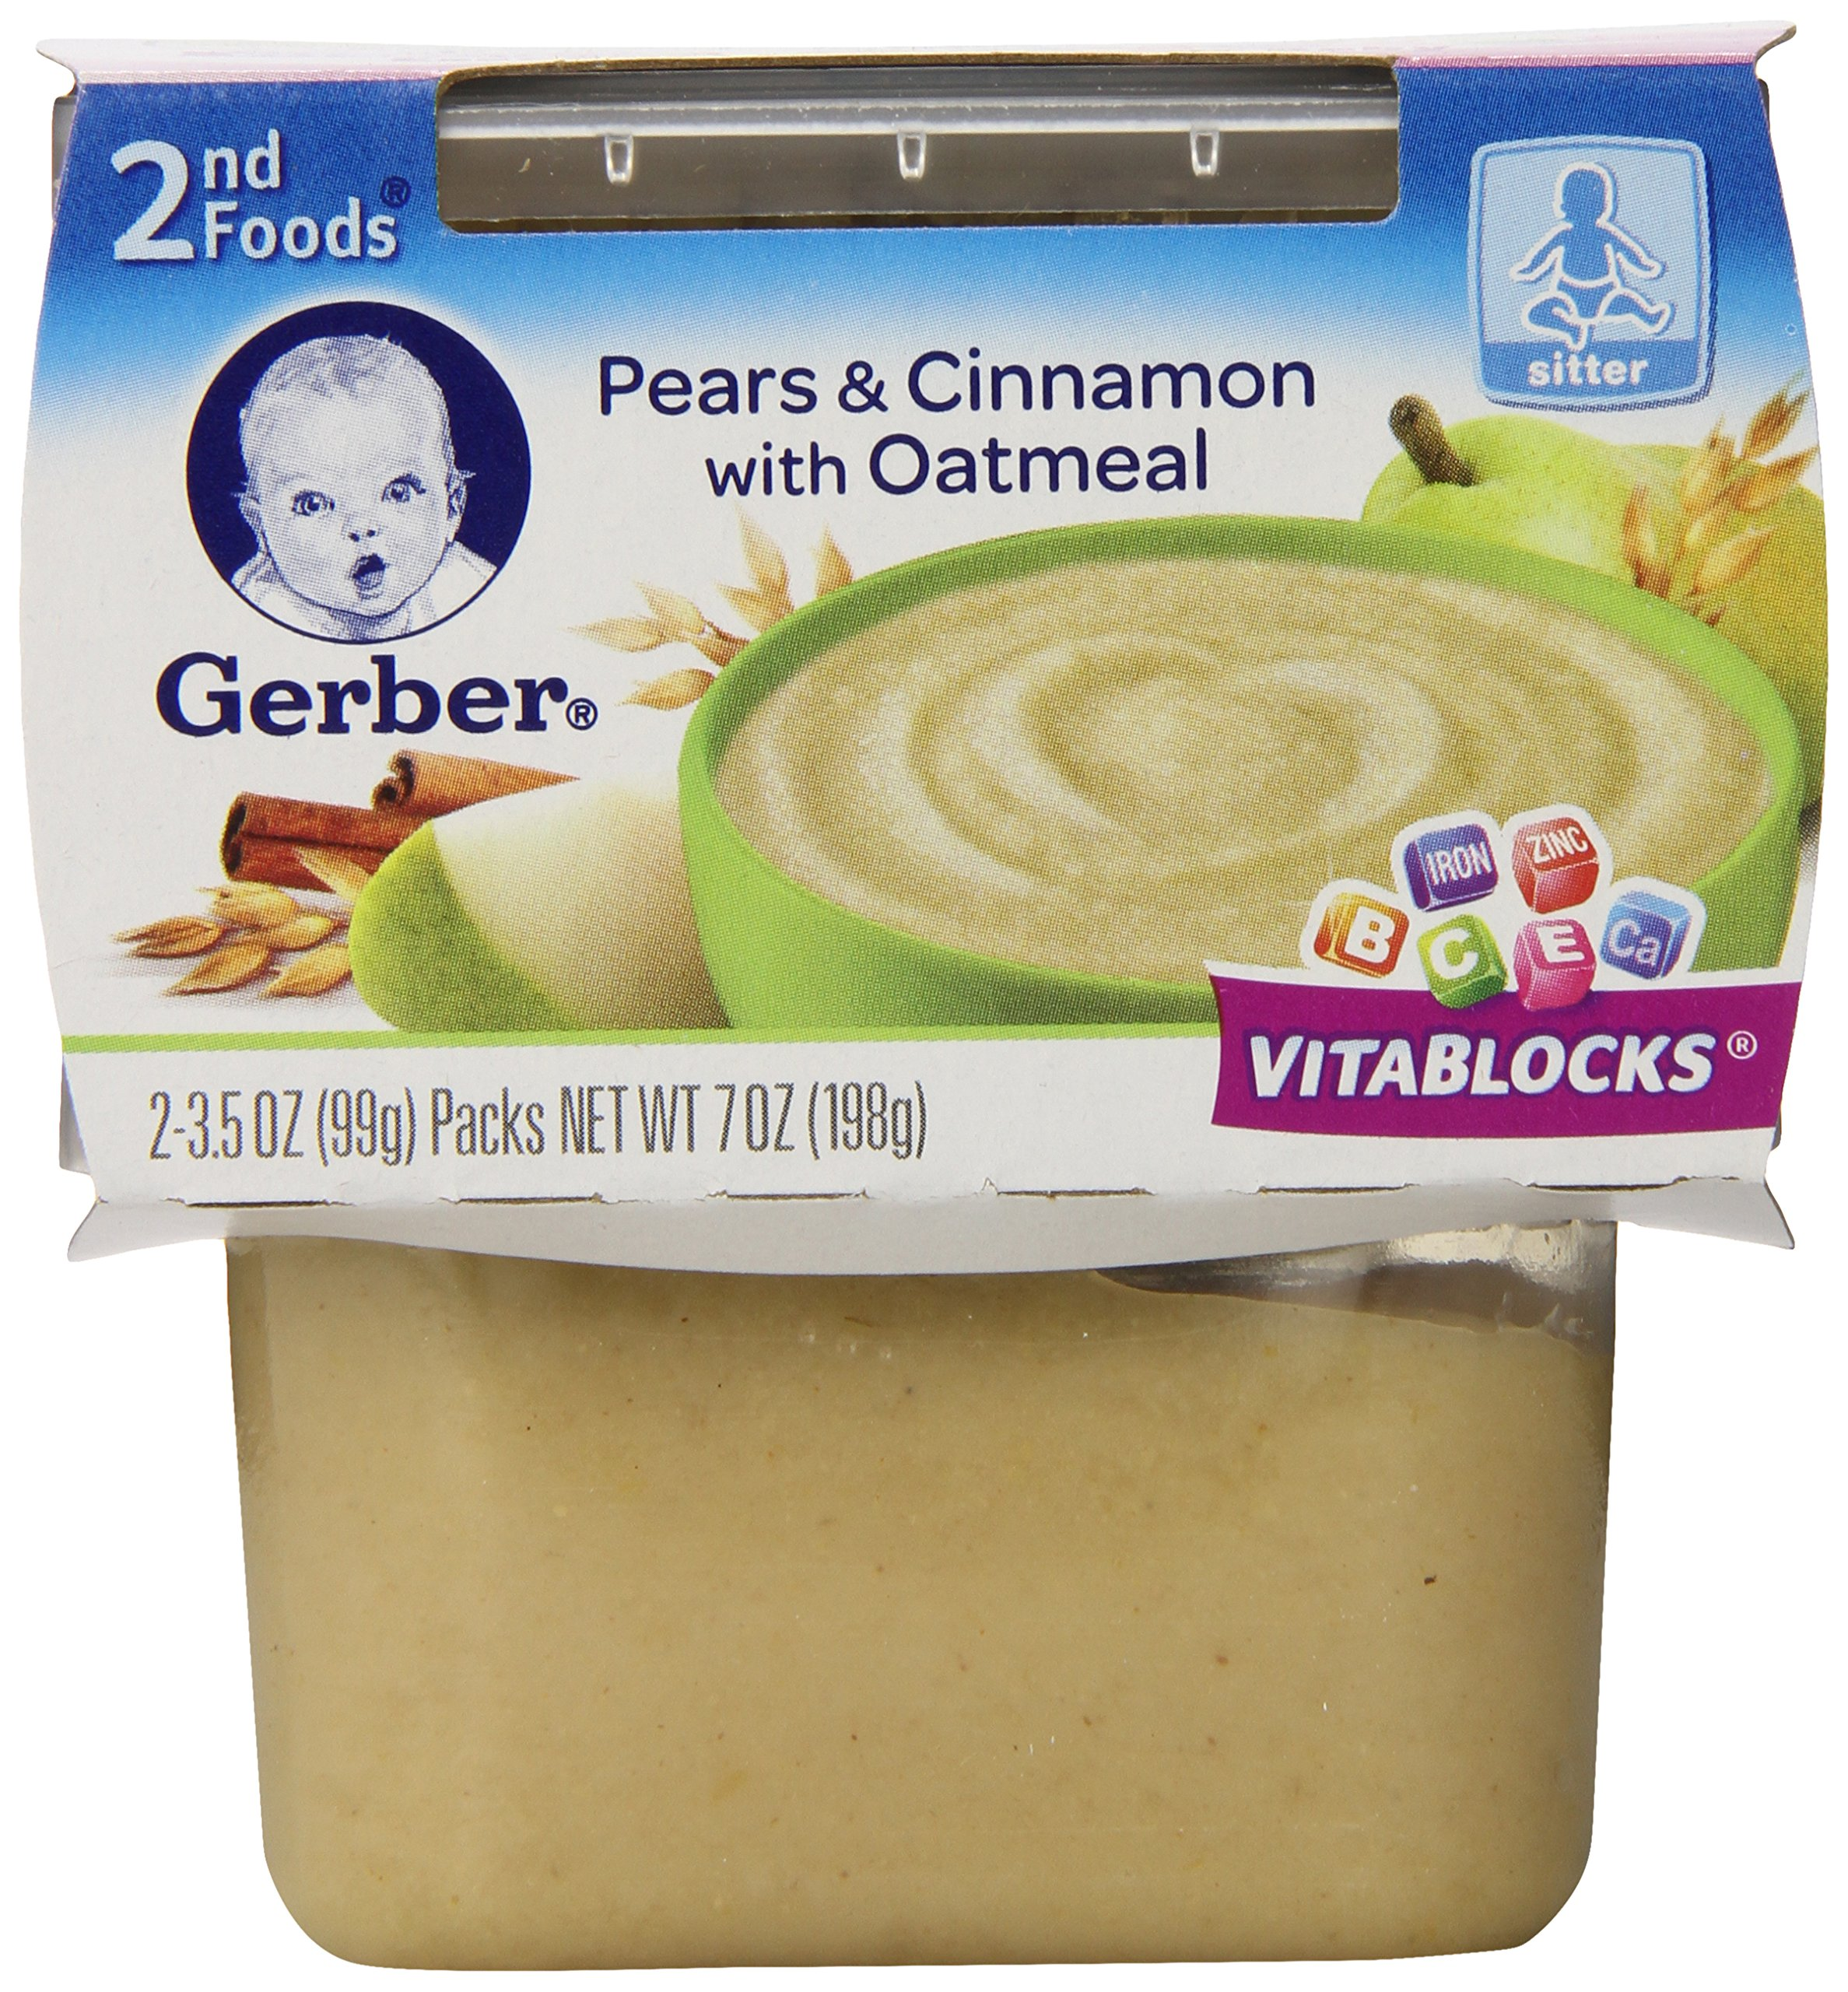 Gerber 2nd Foods Pears with Cinnamon Oatmeal, 2 Count (Pack of 8)